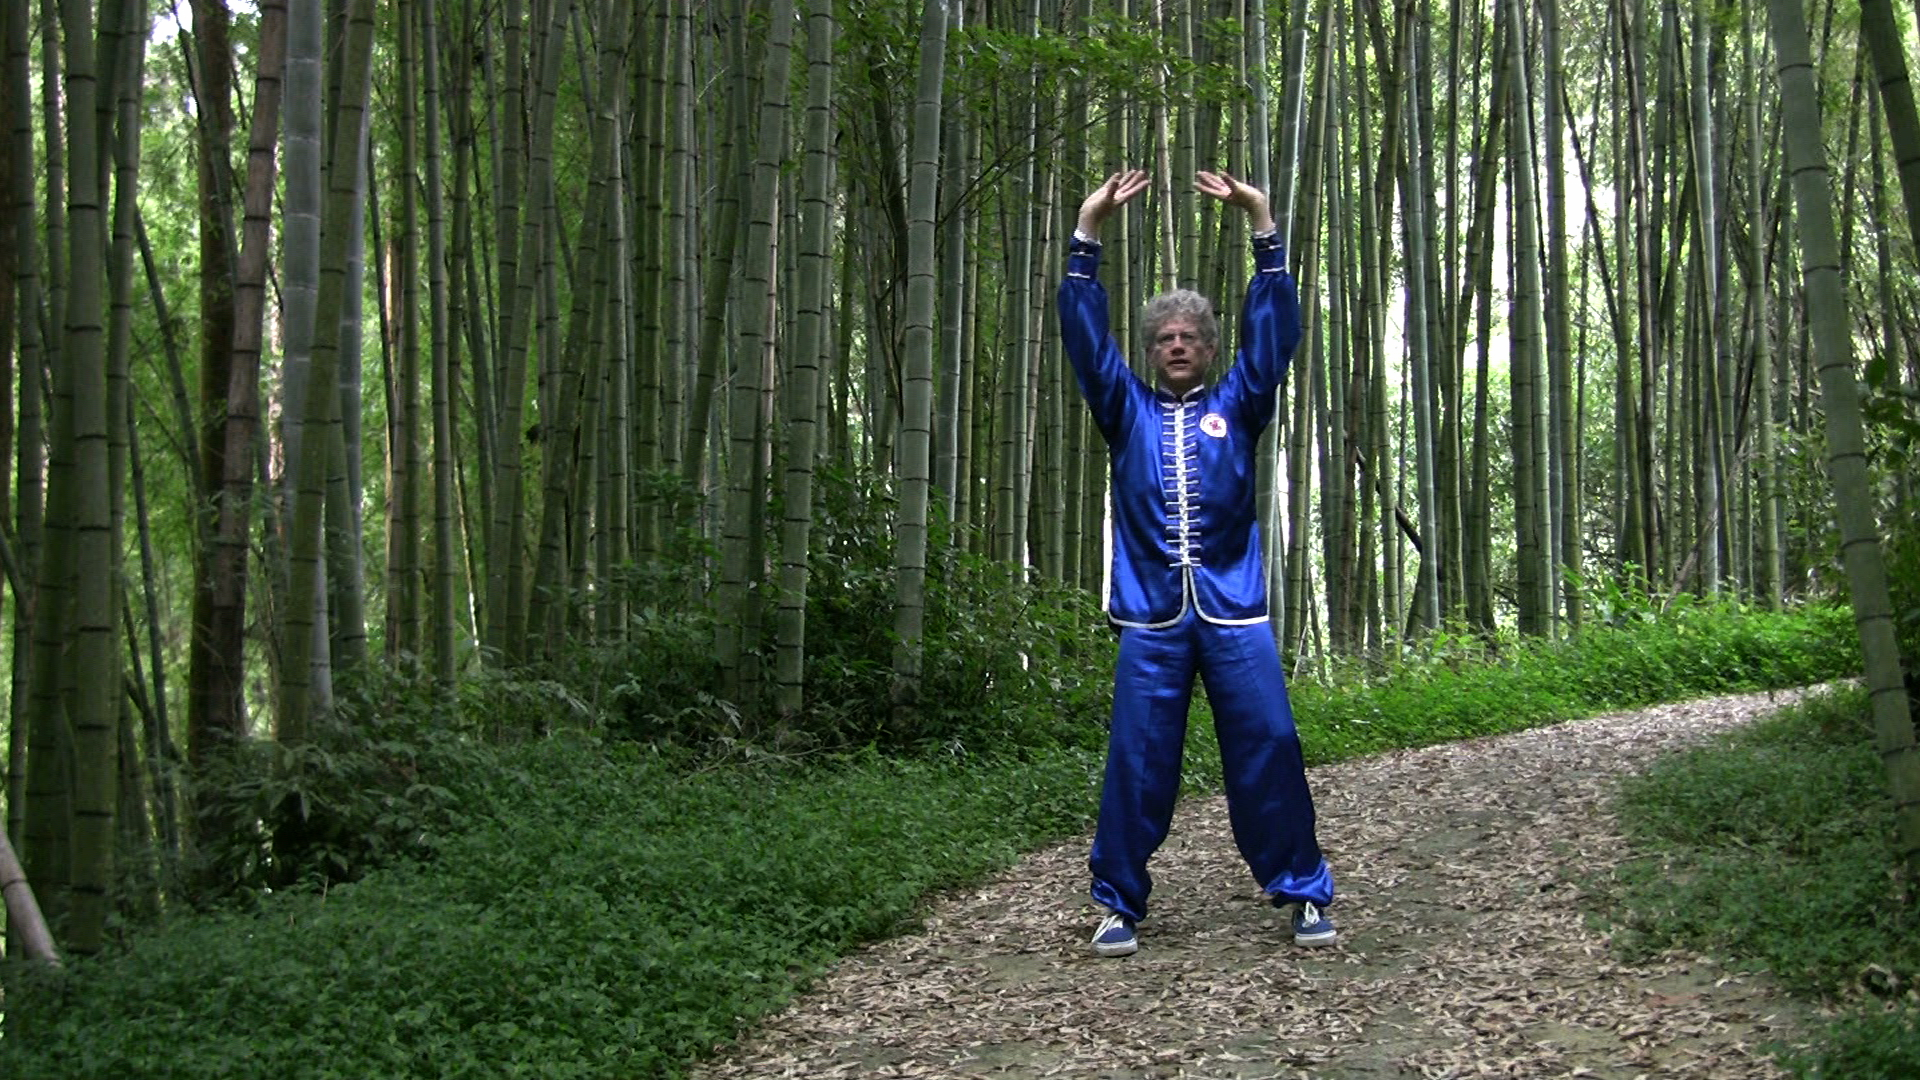 Qi Gong Lessons in Taiwan Bamboo Forest with Scott Jensen Screen Shot